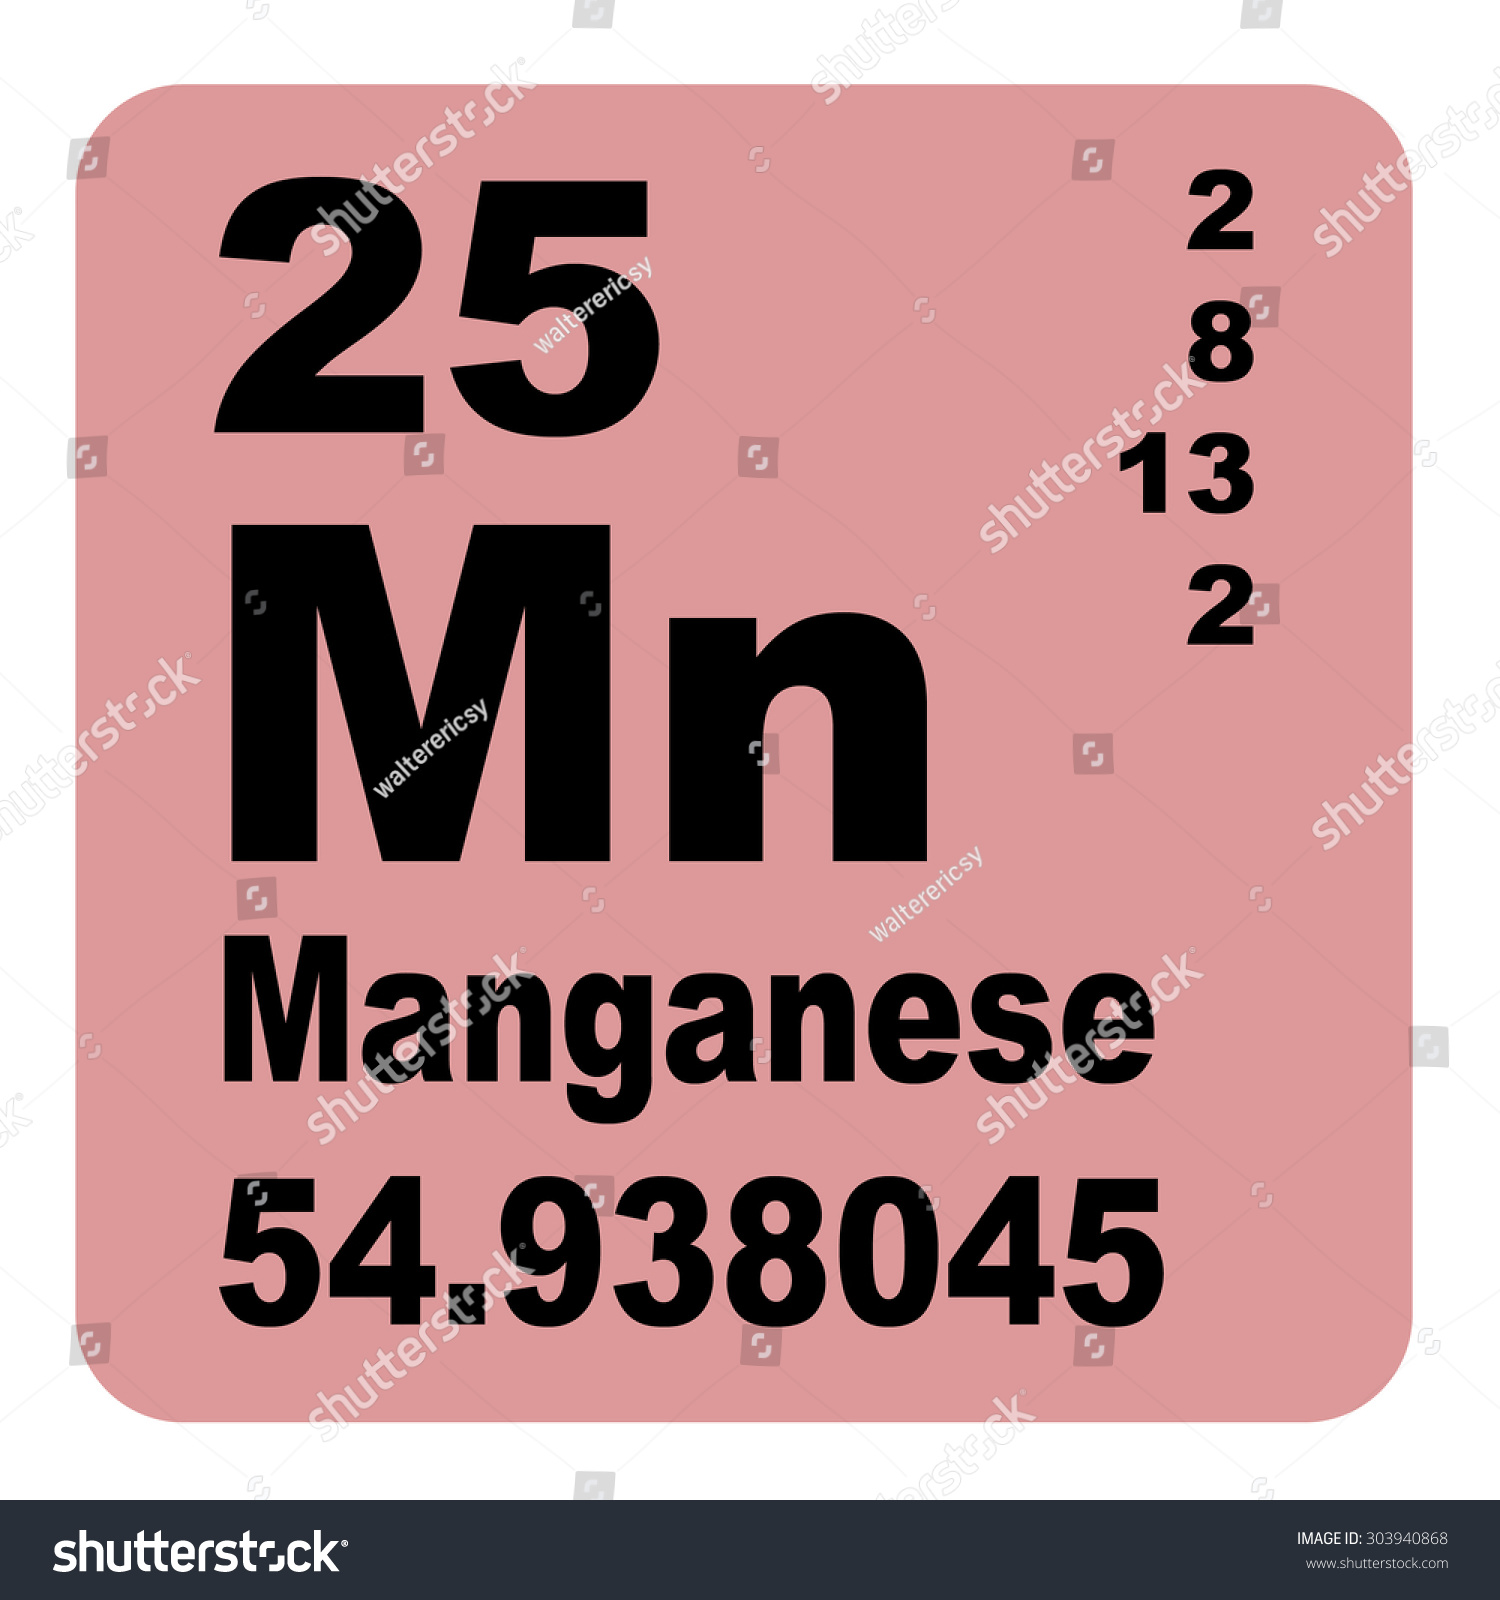 Manganese periodic table elements stock illustration 303940868 manganese periodic table of elements gamestrikefo Image collections